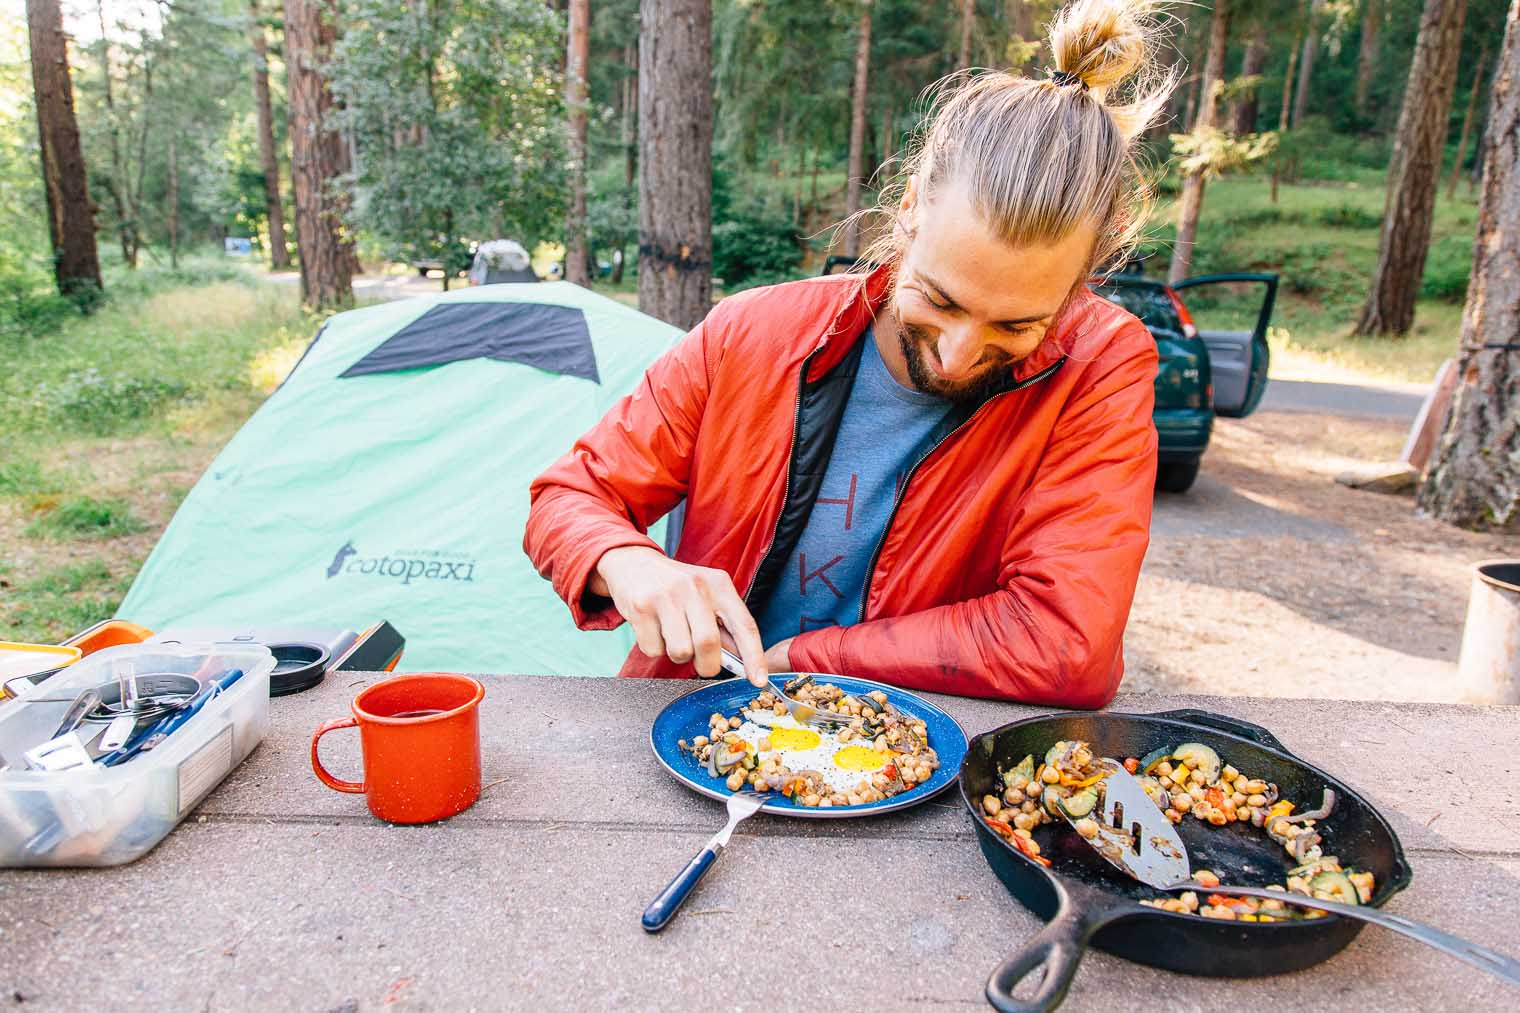 Michael sitting at a camp table eating a plate of chickpea hash with a tent in the background